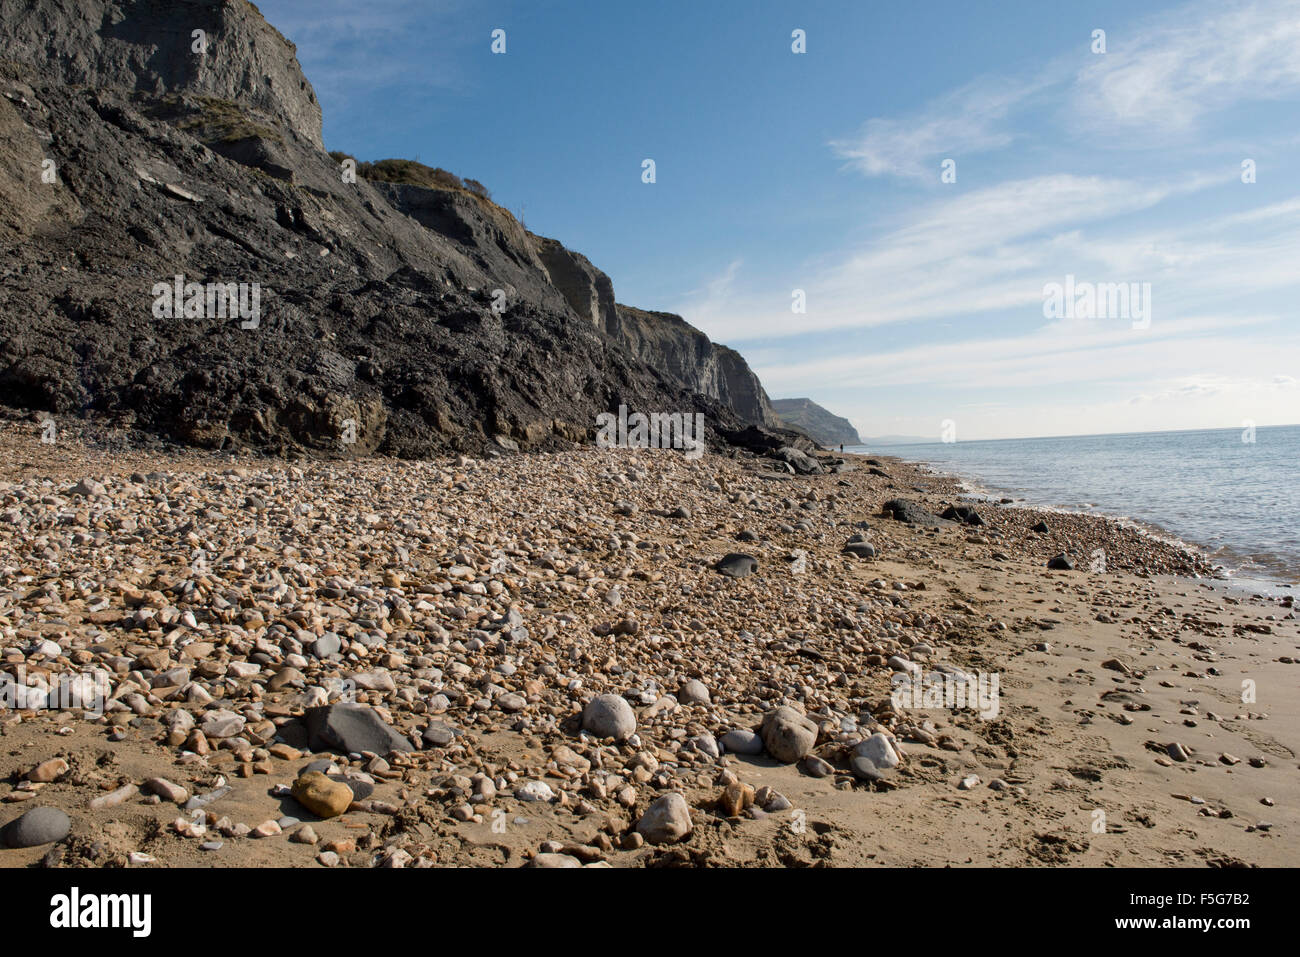 Charmouth Beach on the Jurassic Coast of Dorset with recent rock falls of fossil bearing blue lias or mudstone - Stock Image